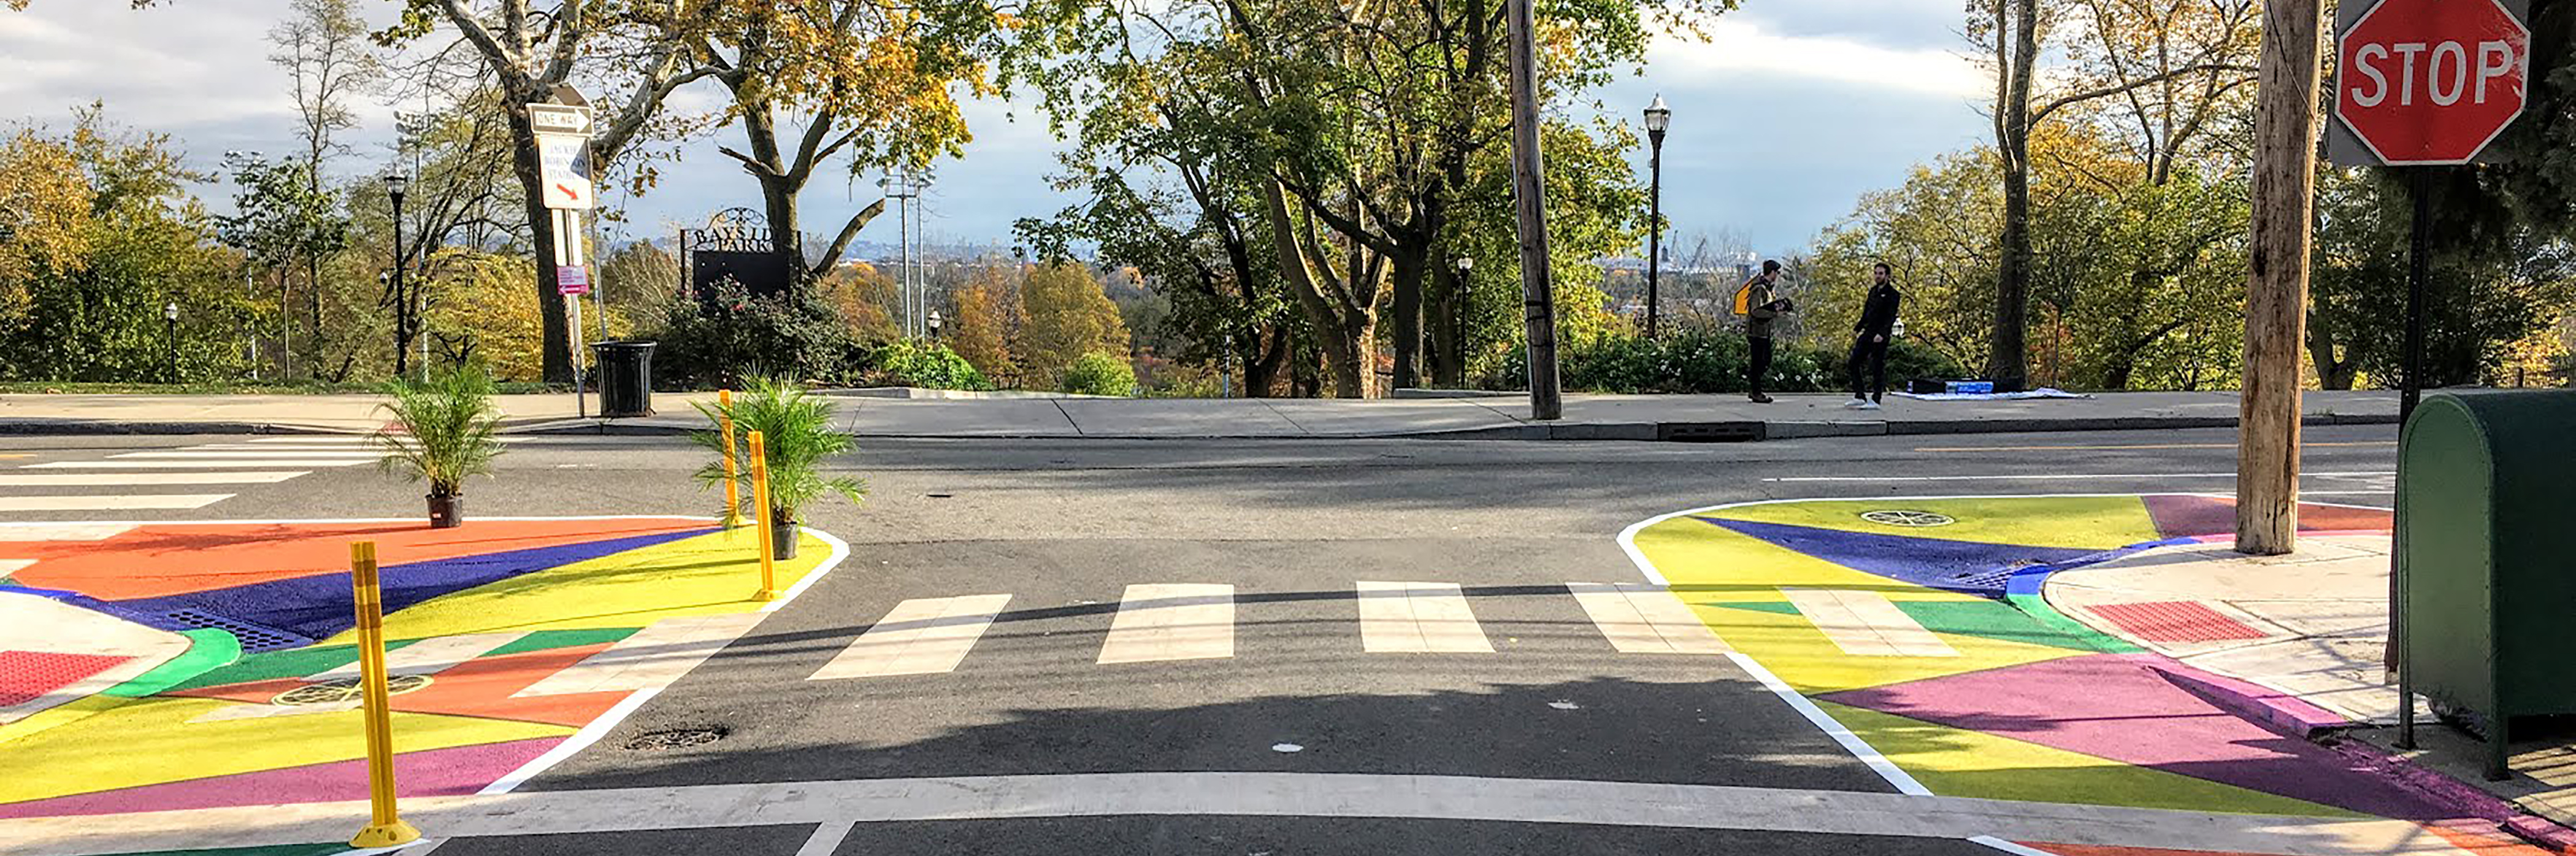 Street Plans Collaborative | Better Streets, Better Places